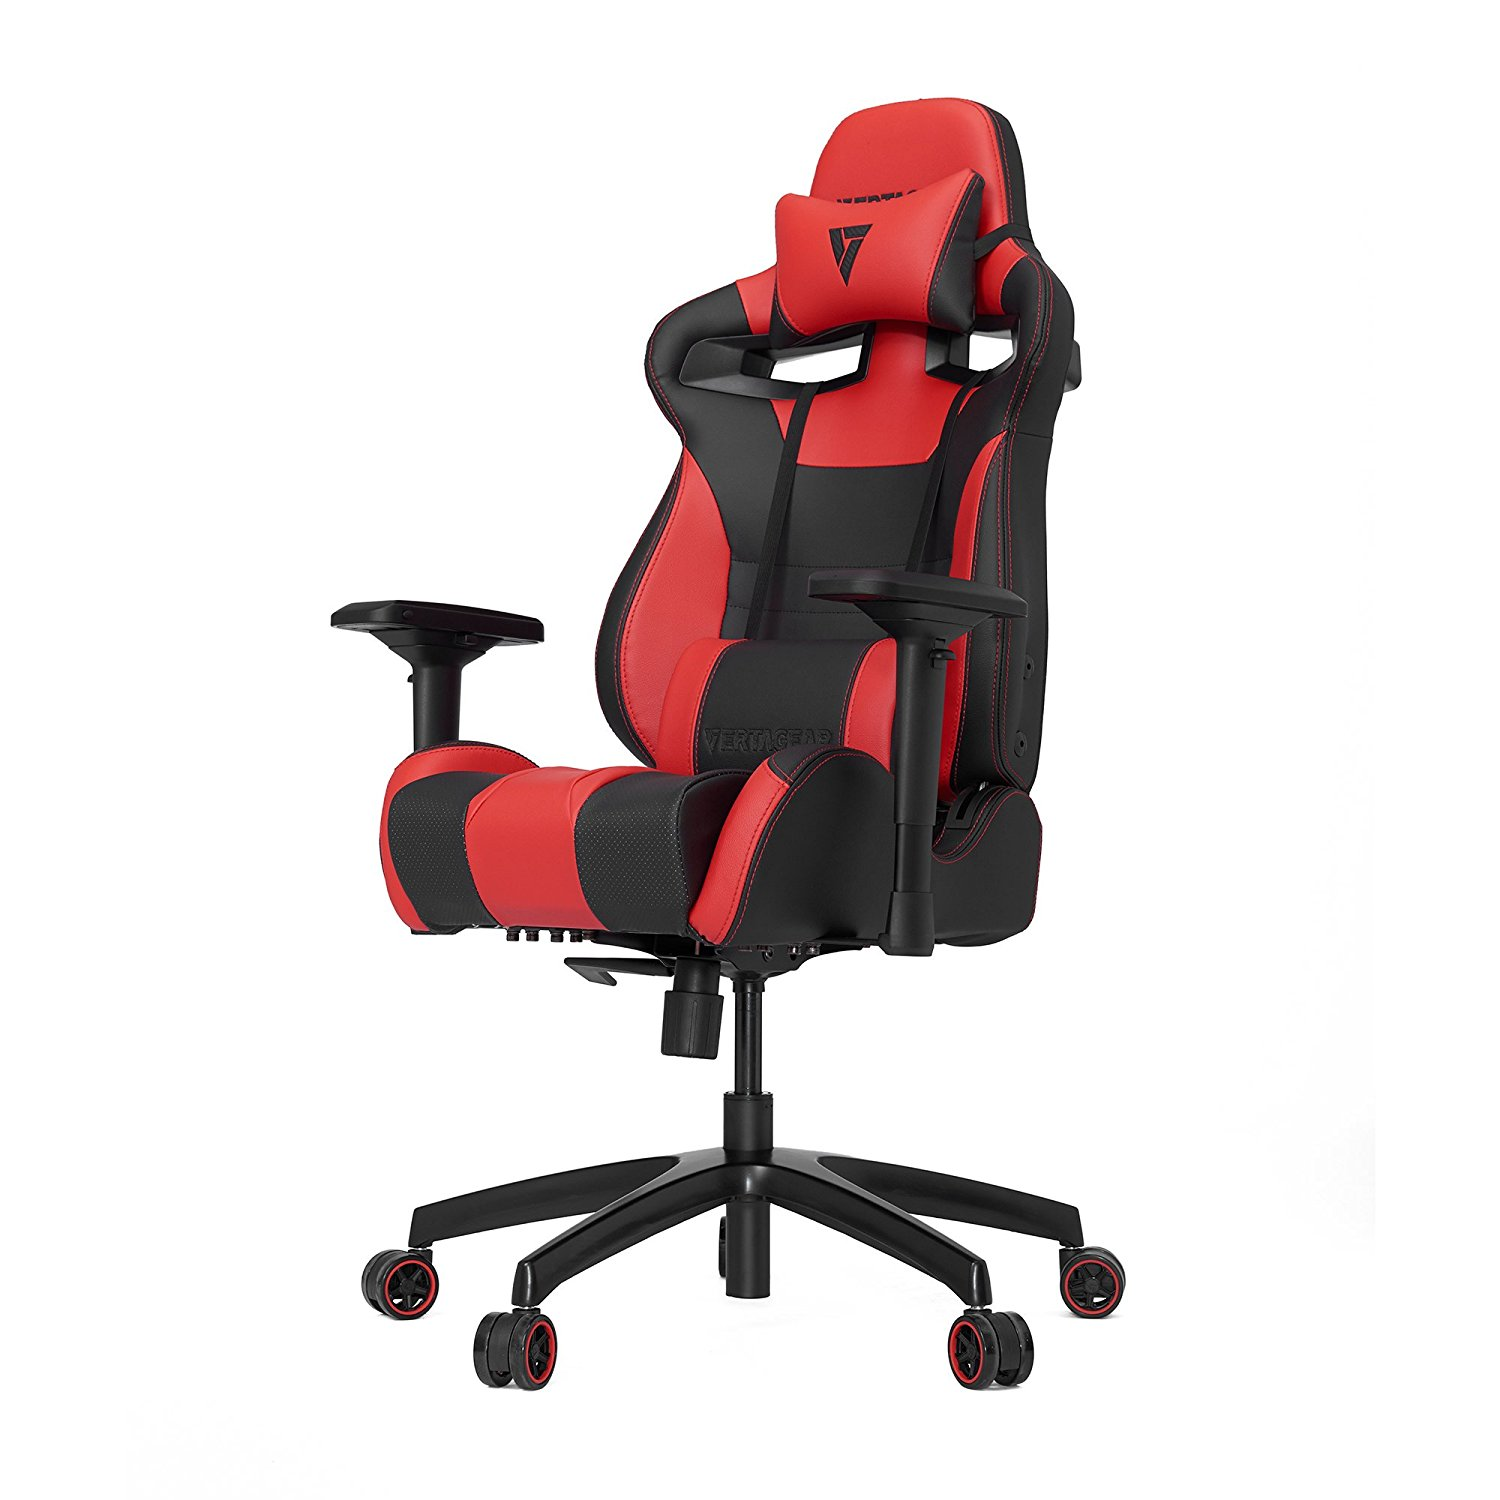 Best Rated Gaming Chair Under $150 In 2017 Best Chair For The Money